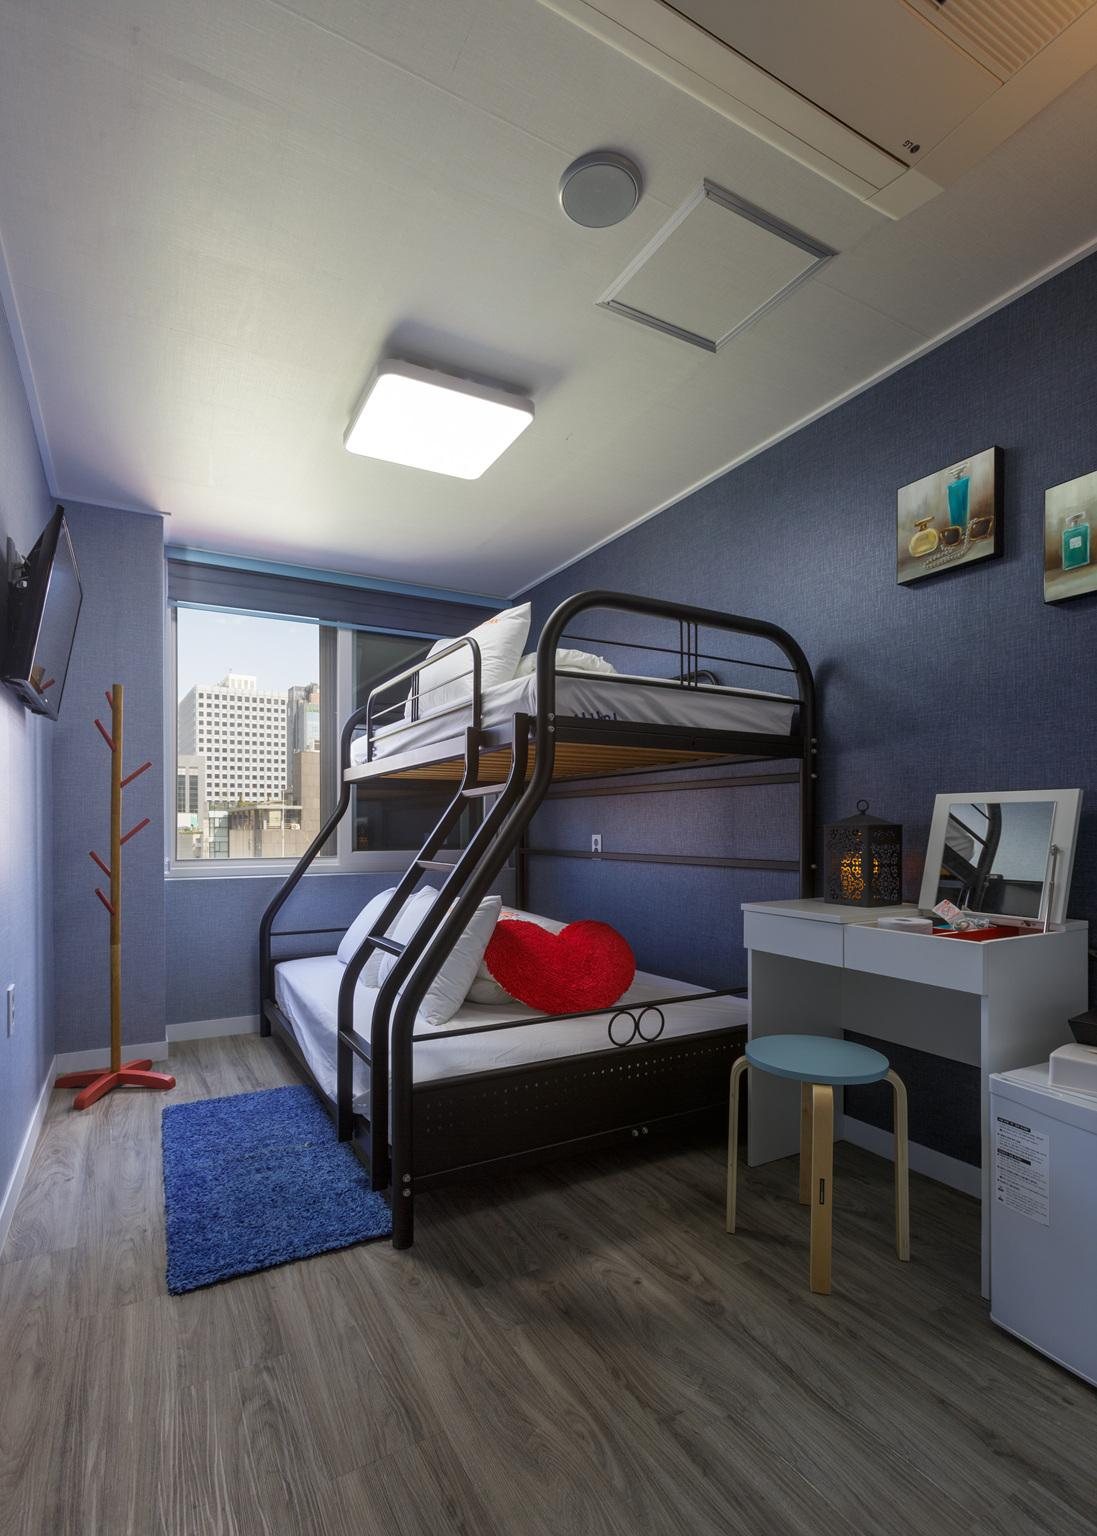 Triple - Bunk Bed Style